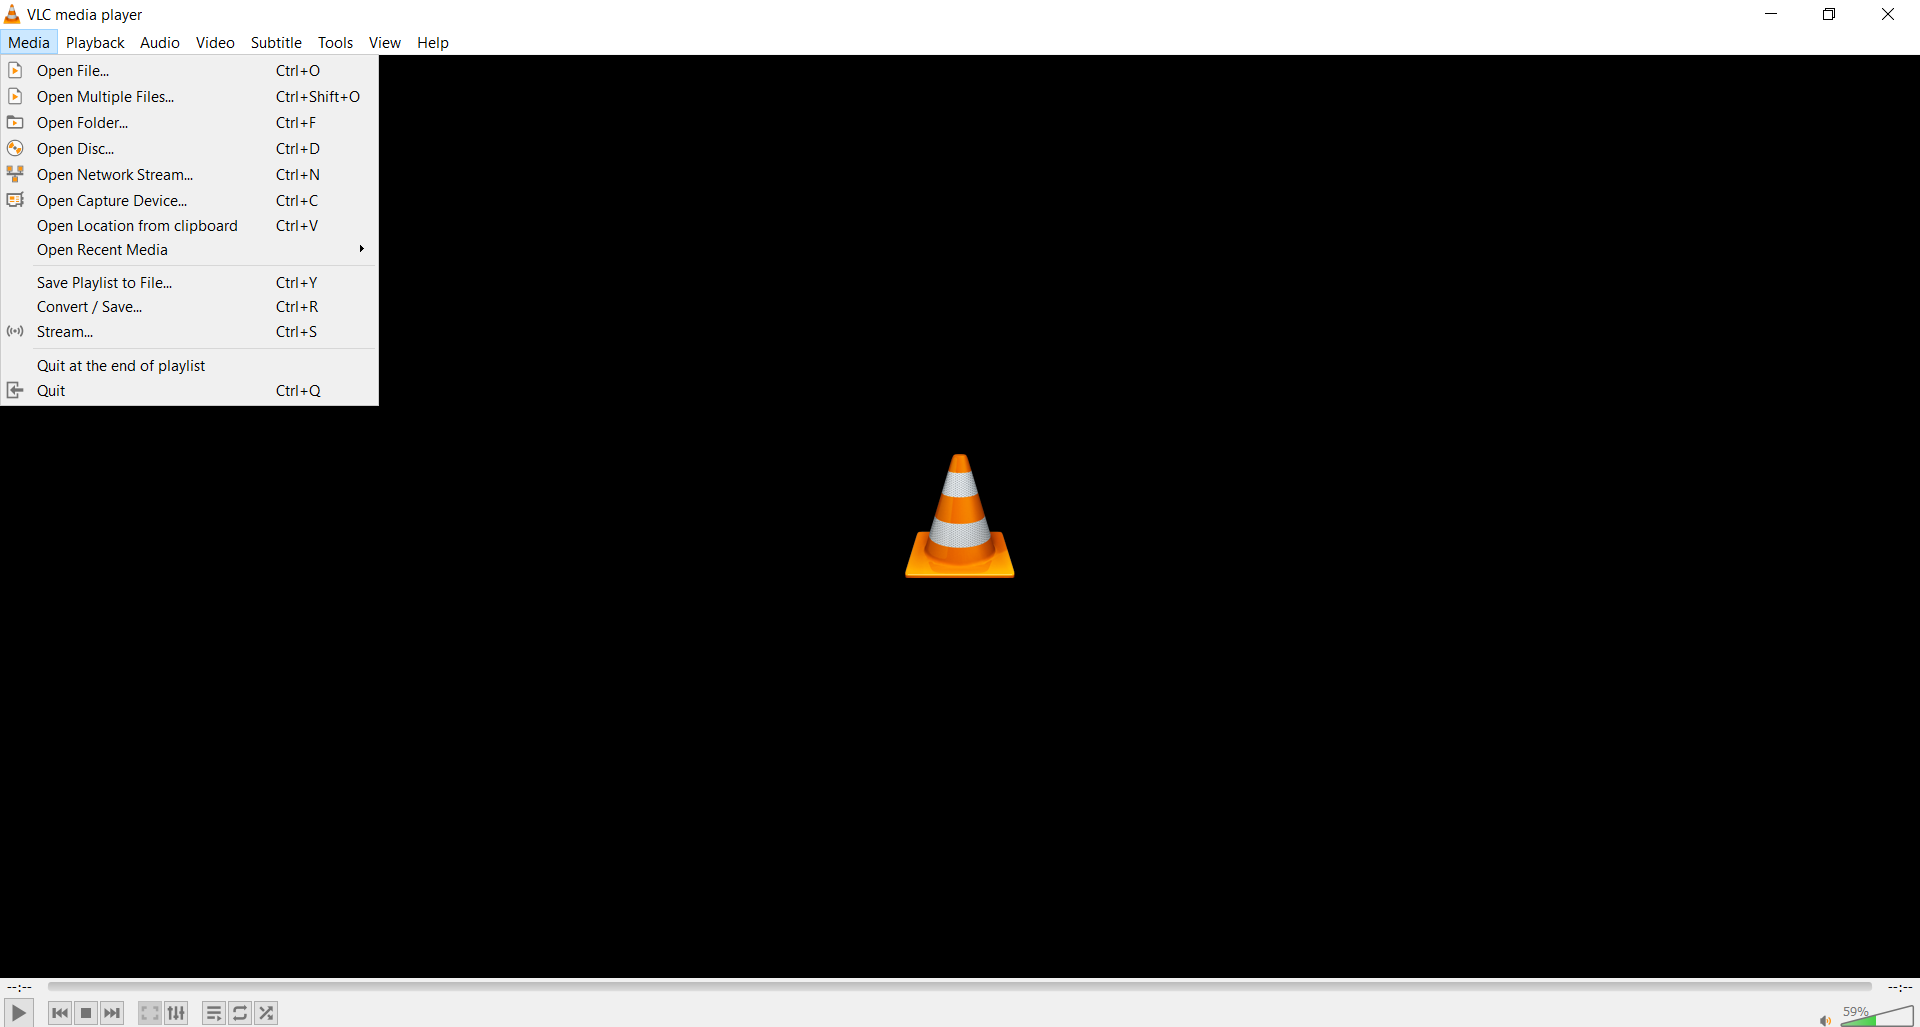 VLC media player available for Mac and Windows